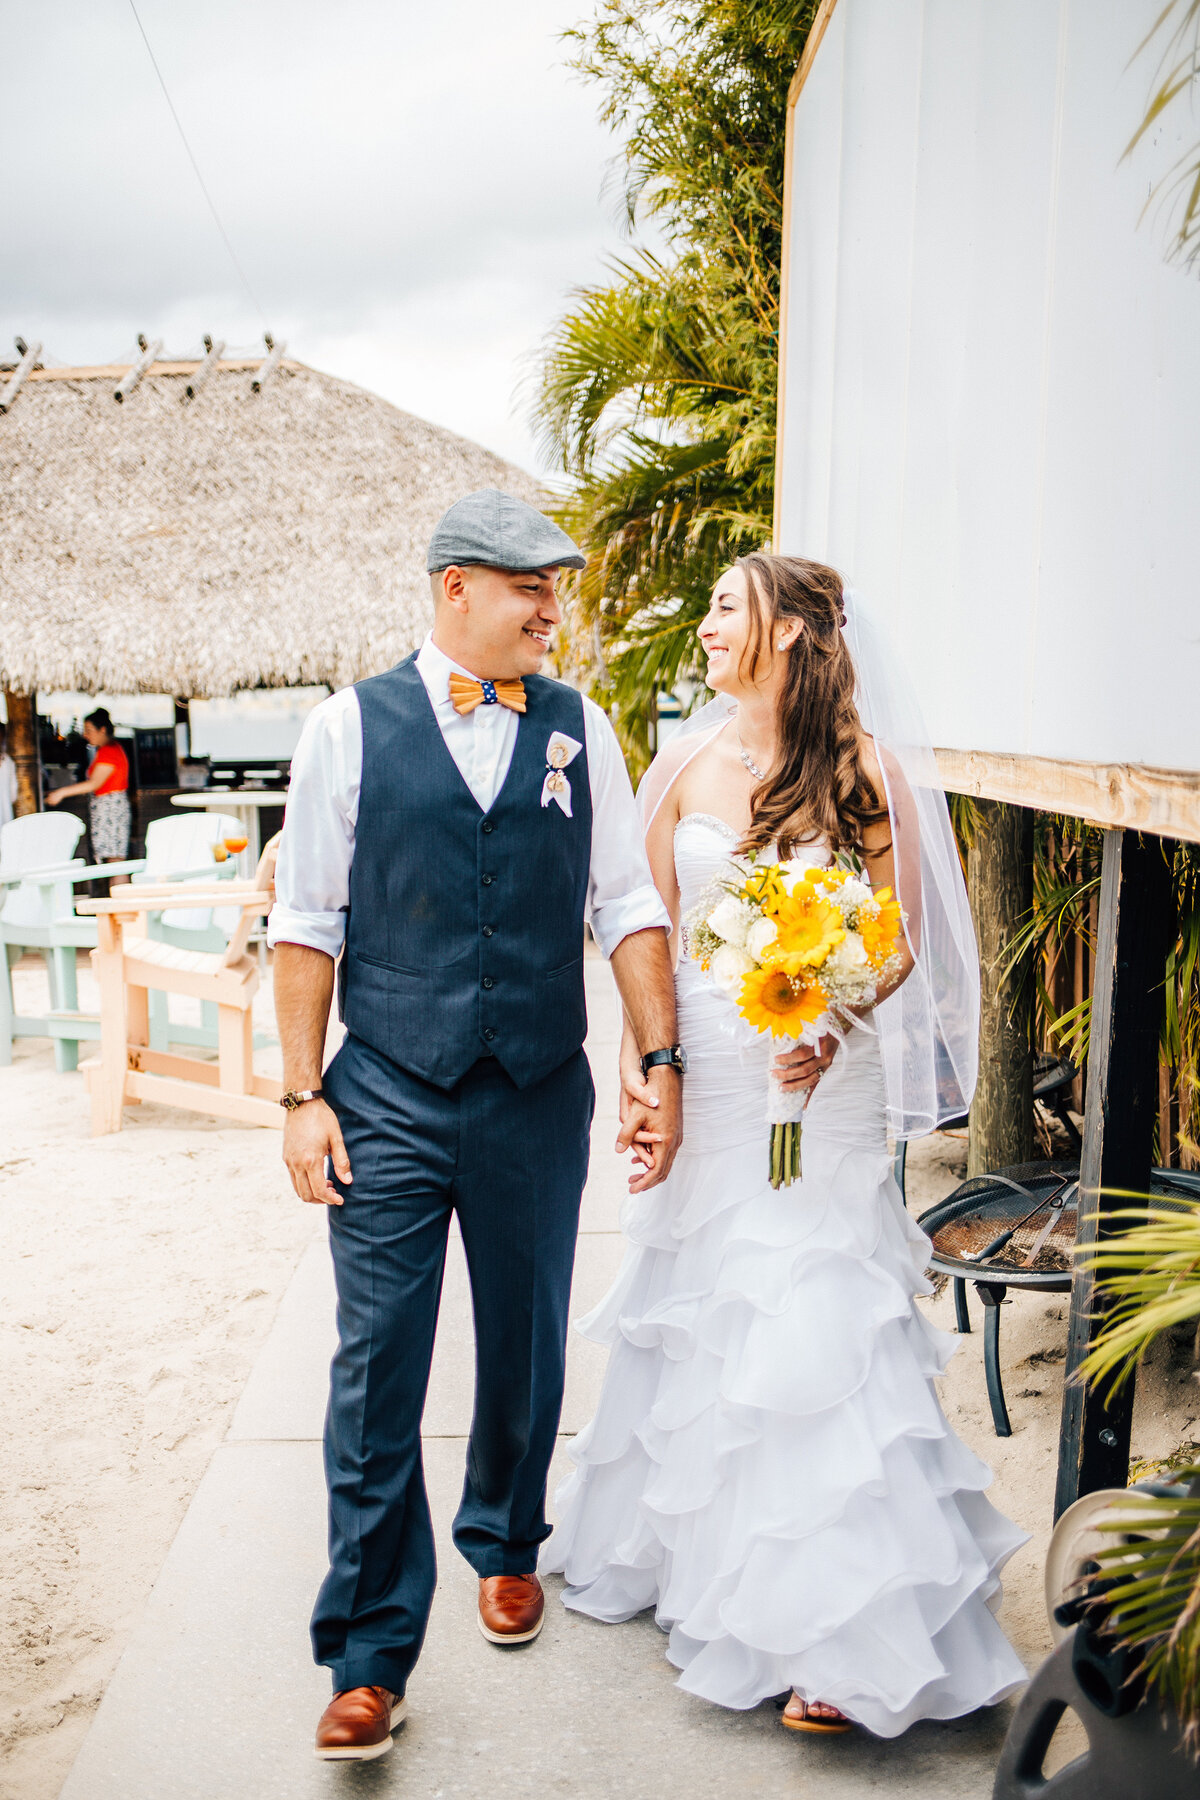 Kimberly_Hoyle_Photography_Marrero_Millikens_Reef_Wedding-67